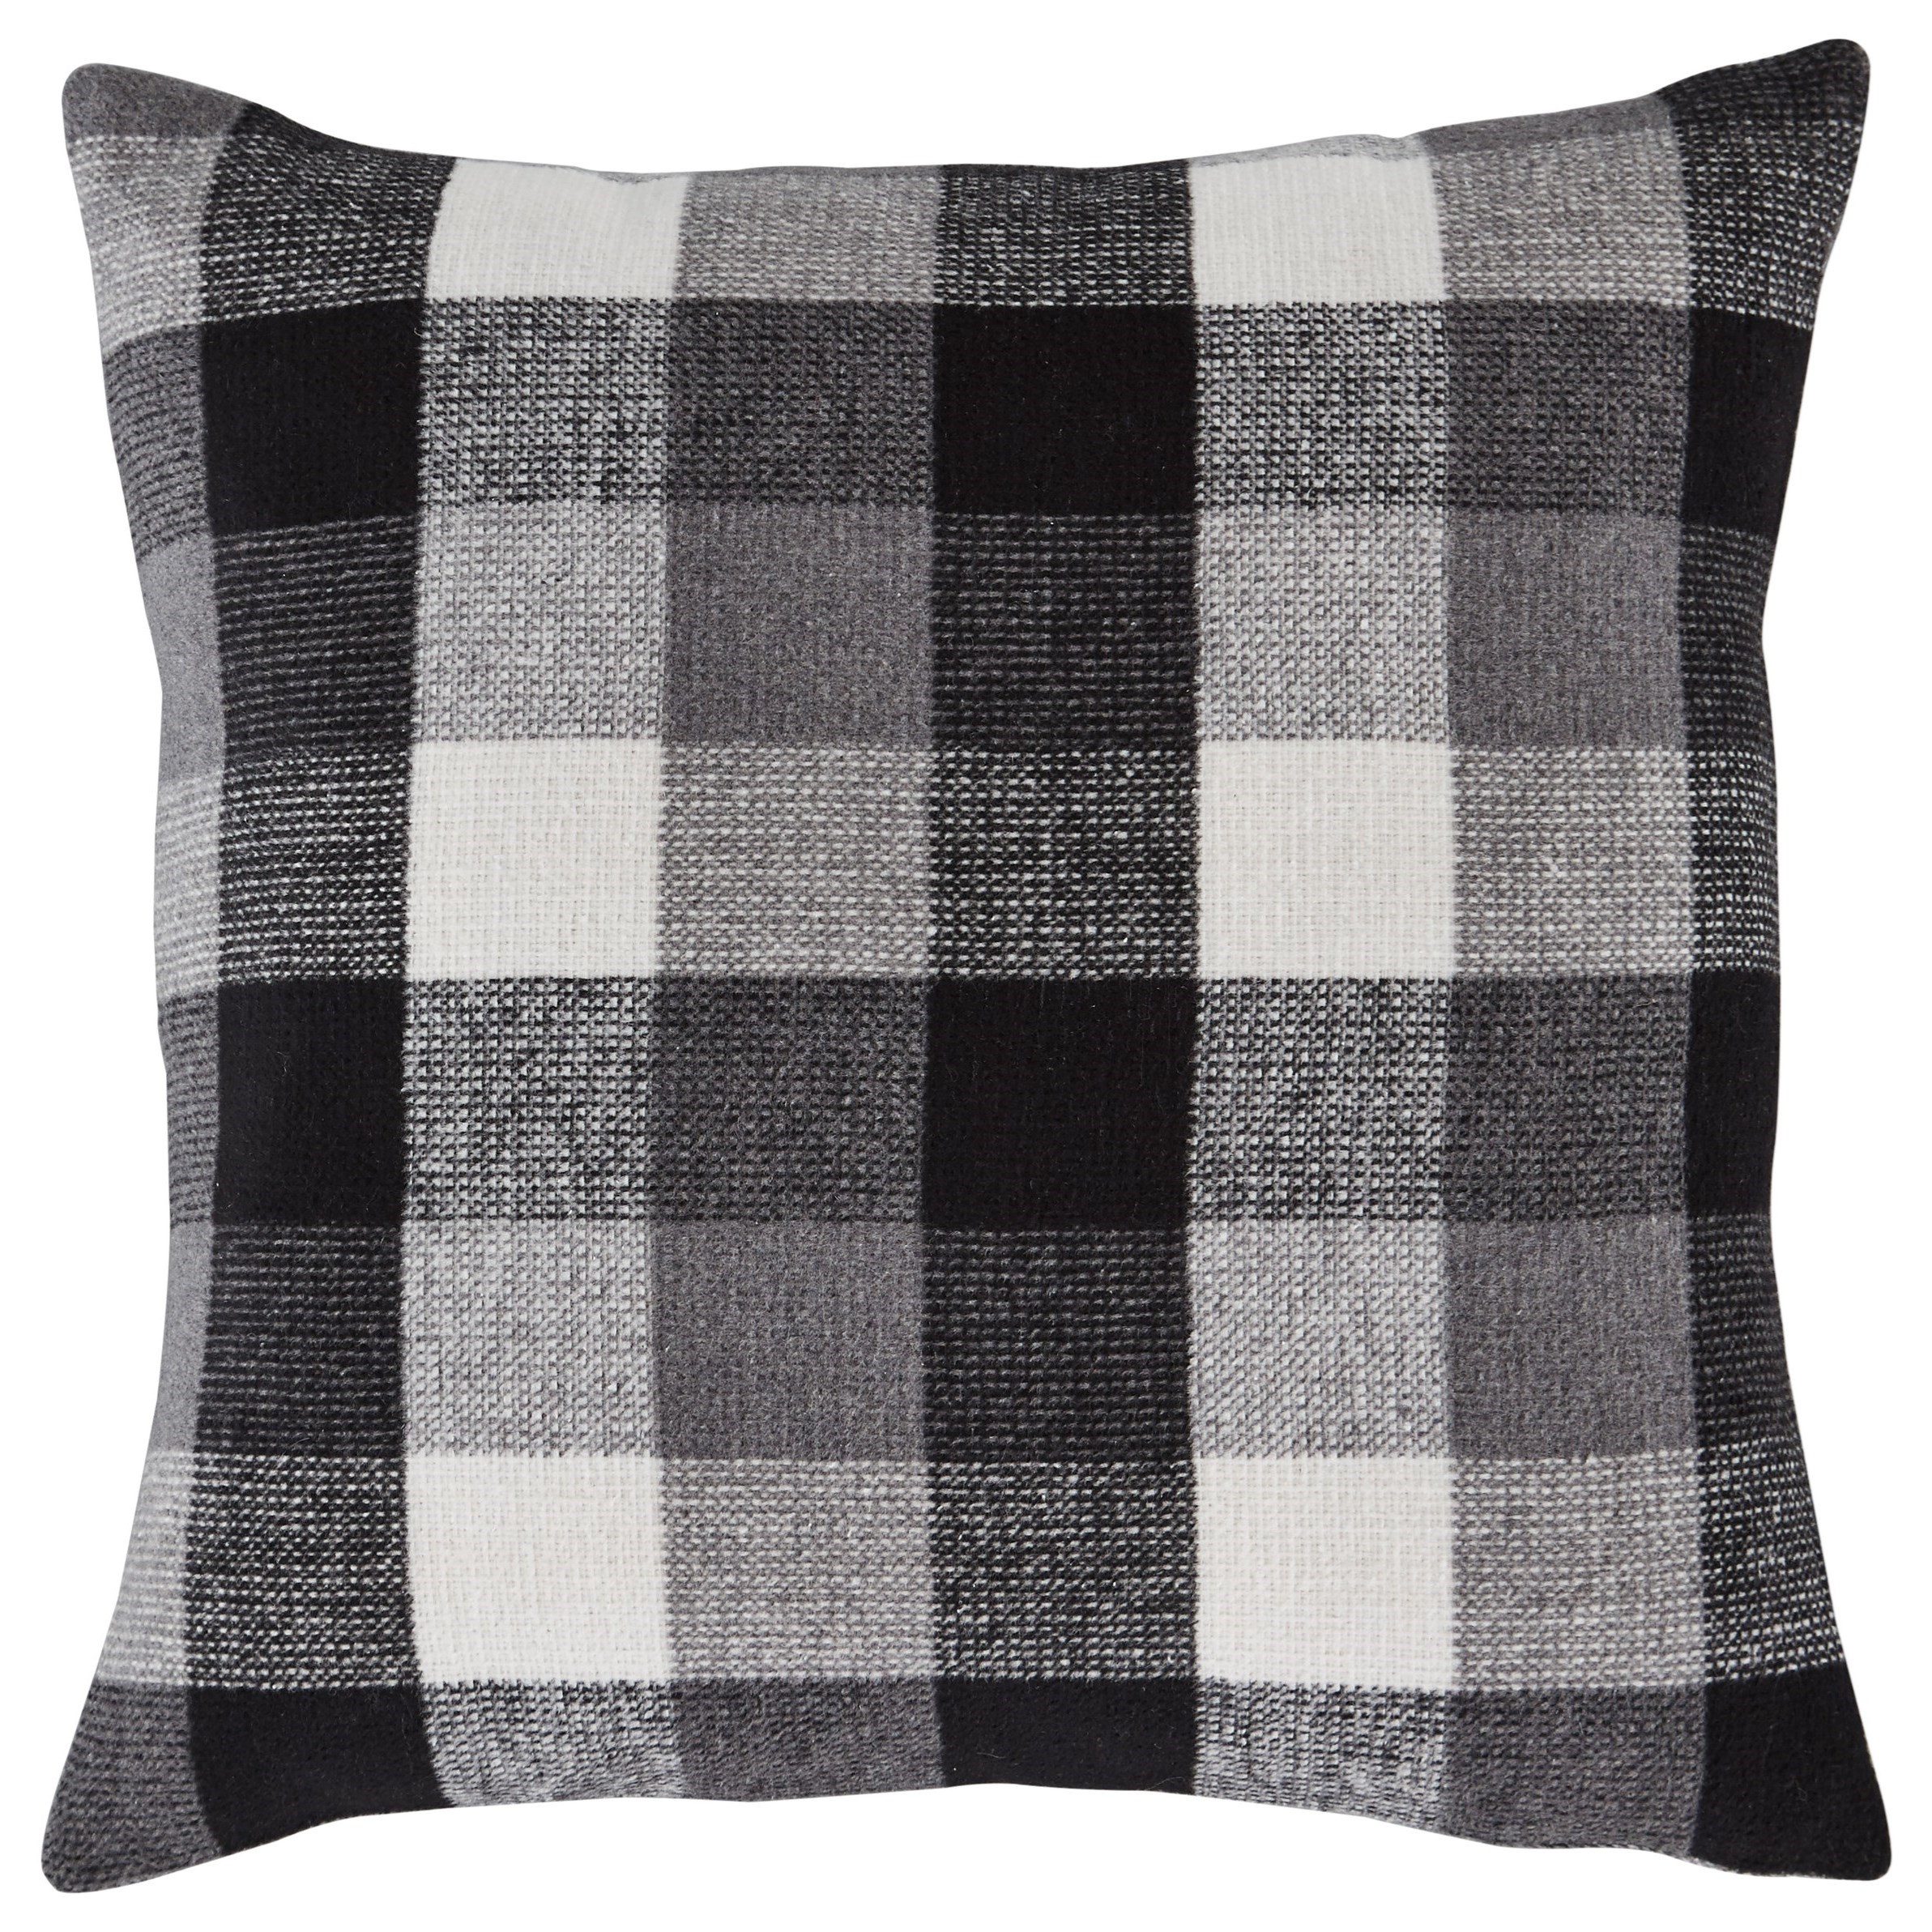 Pillows Carrigan Charcoal/White Pillow by Vendor 3 at Becker Furniture